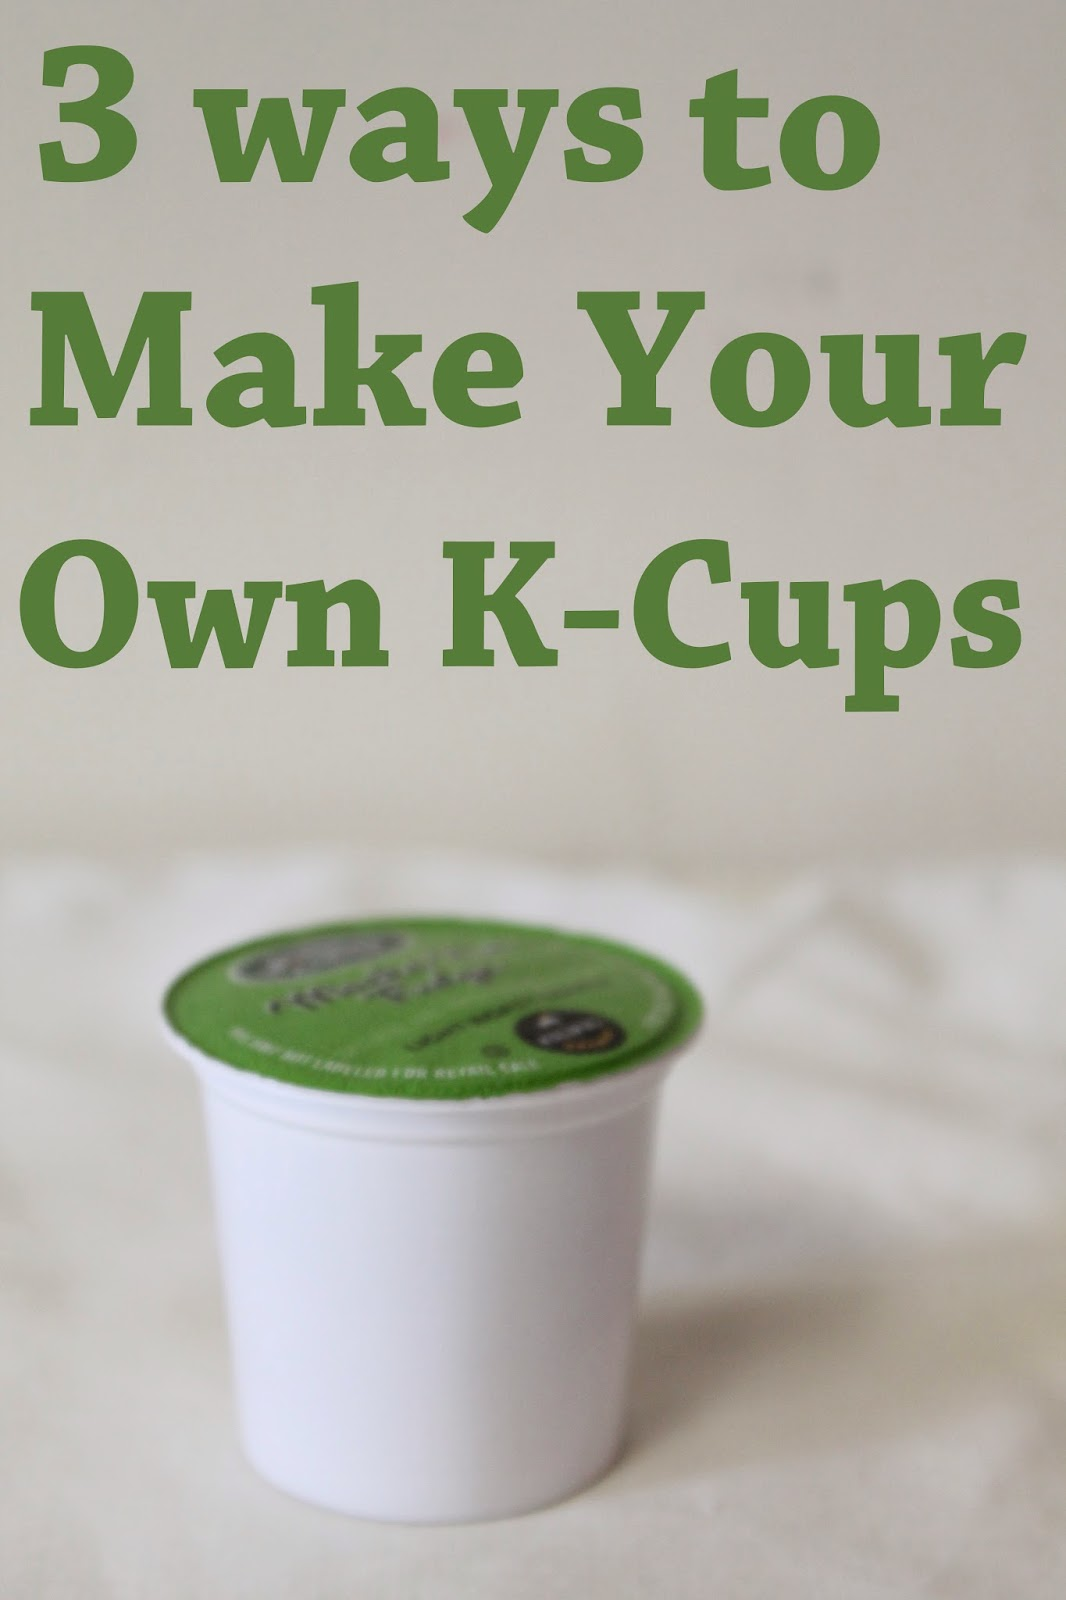 Try Simple Cup Subscriptions How does it work? Choose your Product; Choose Your Time Frame; Checkout; You'll save on every order throughout your subscription. Up to 30% OFF! Make your Own K-Cups in Four Simple Steps. Simple Cups is an SCS Direct Inc Brand. SCS Direct Inc. | .